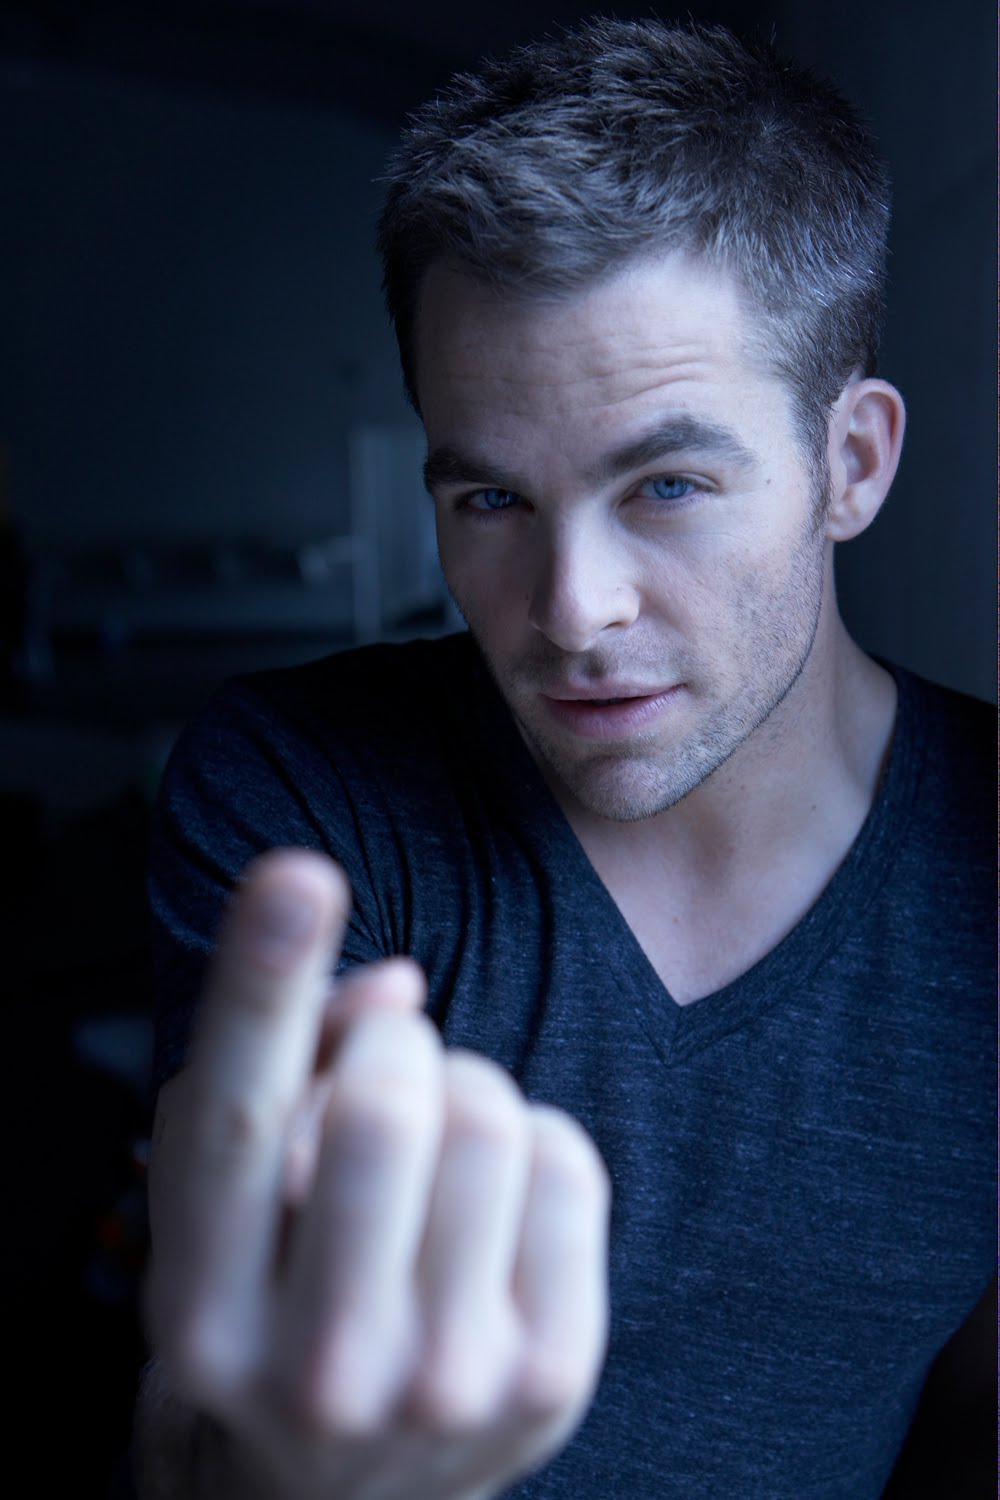 chris pine Apparently, chris pine and chris hemsworth were asking paramount pictures and skydance media to stick to the existing deals, while the companies said the star trek franchise was not as profitable as, say, the marvel cinematic universe.